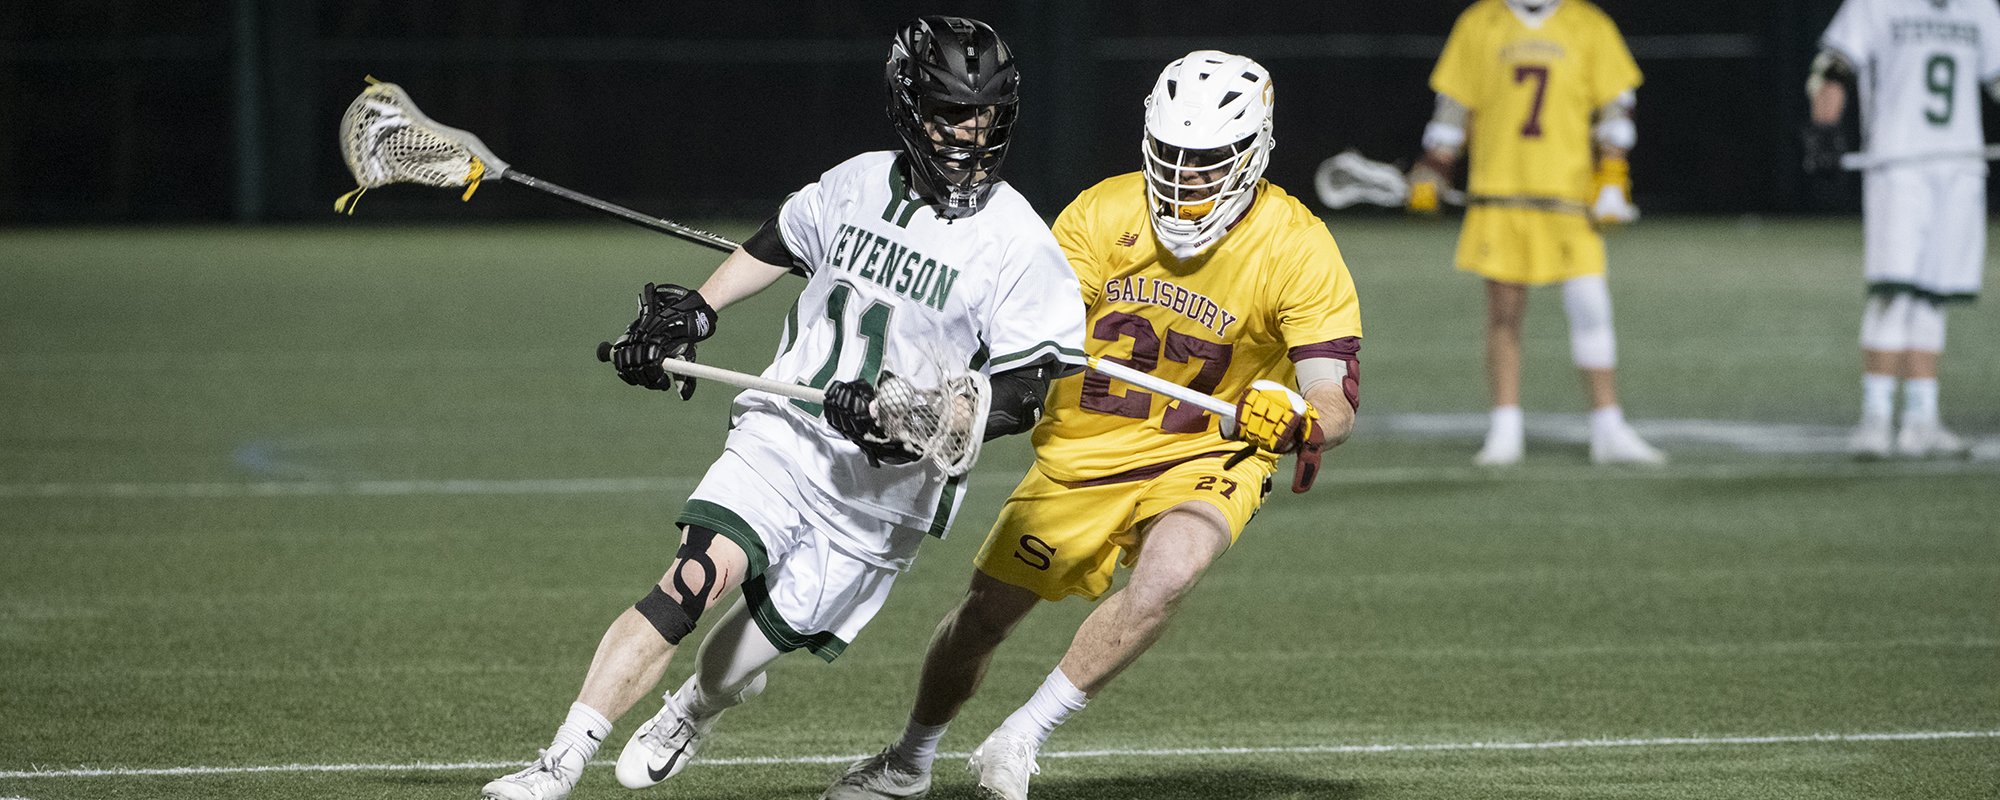 Second-Ranked Sea Gulls Use Balance to Down No. 19 Mustangs